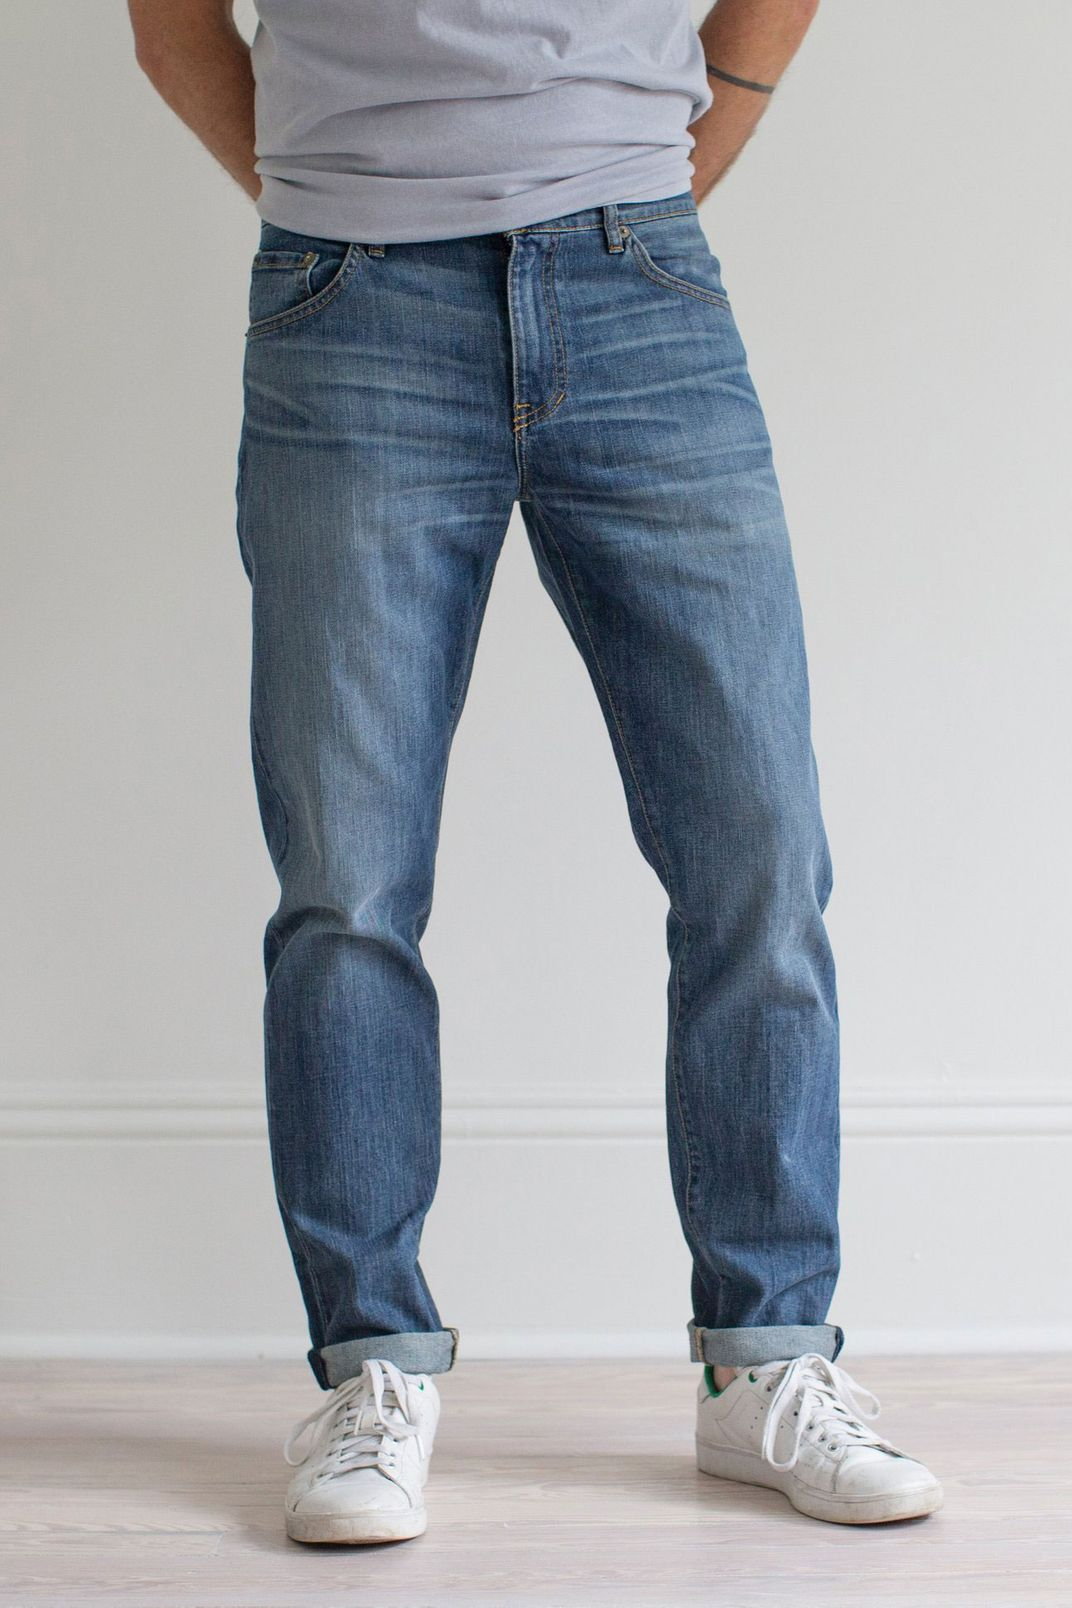 Raleigh Denim Graham Jeans